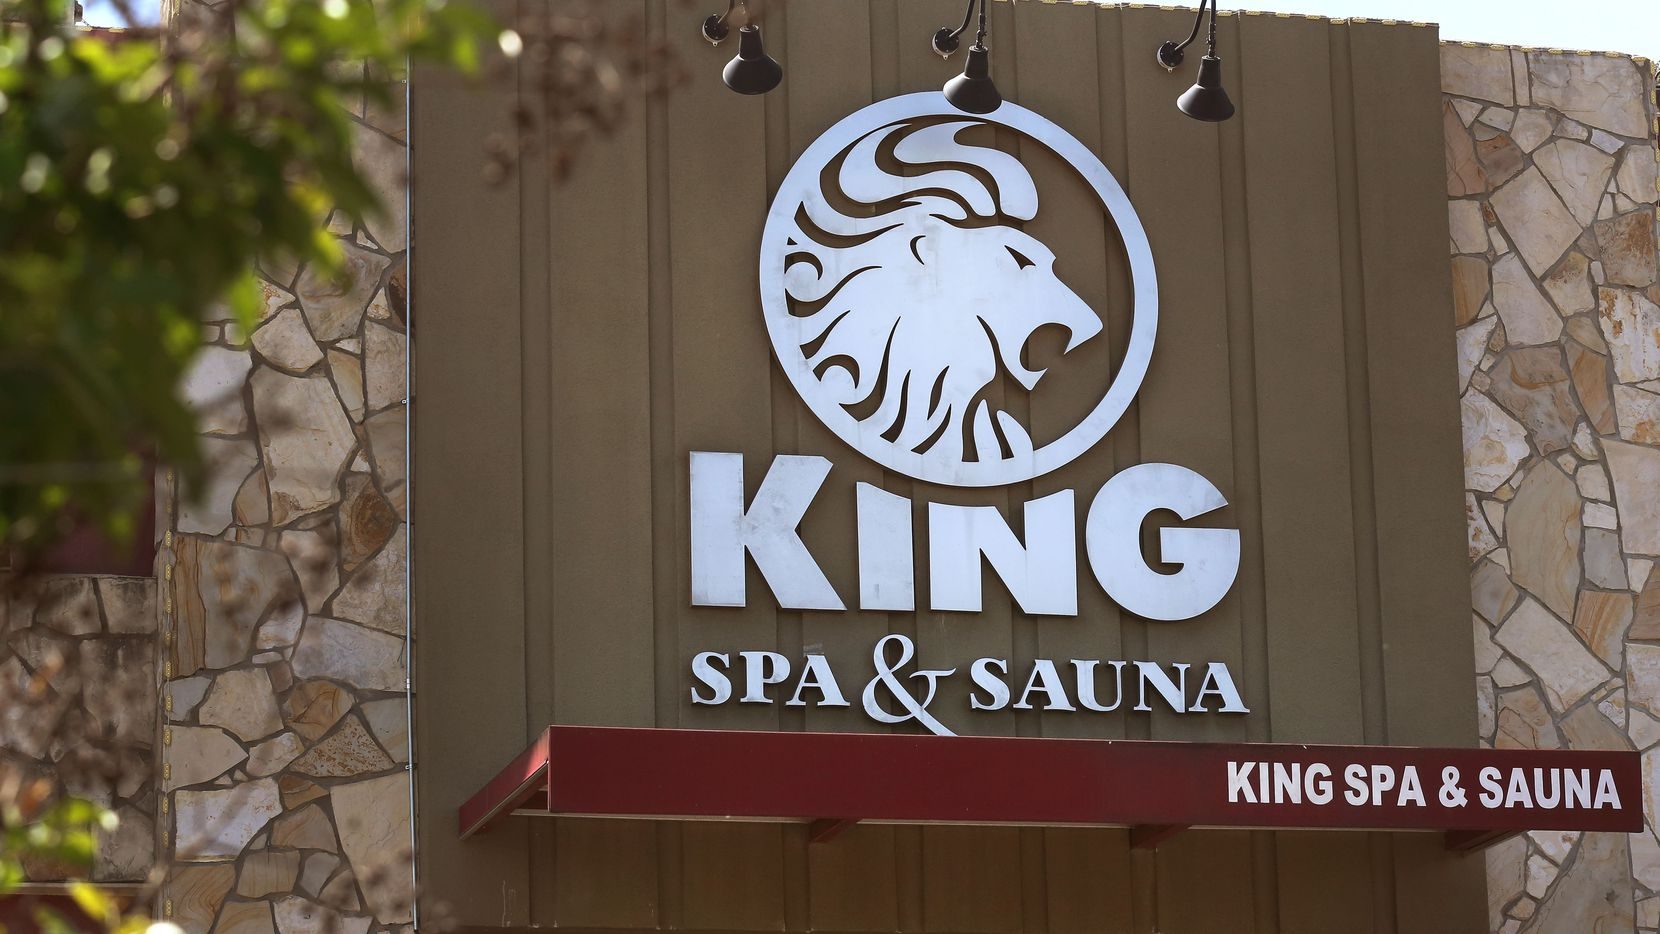 The King Spa and Sauna at 2154 Royal Lane in Dallas, photographed on Saturday, April 8, 2017. (Louis DeLuca/The Dallas Morning News)